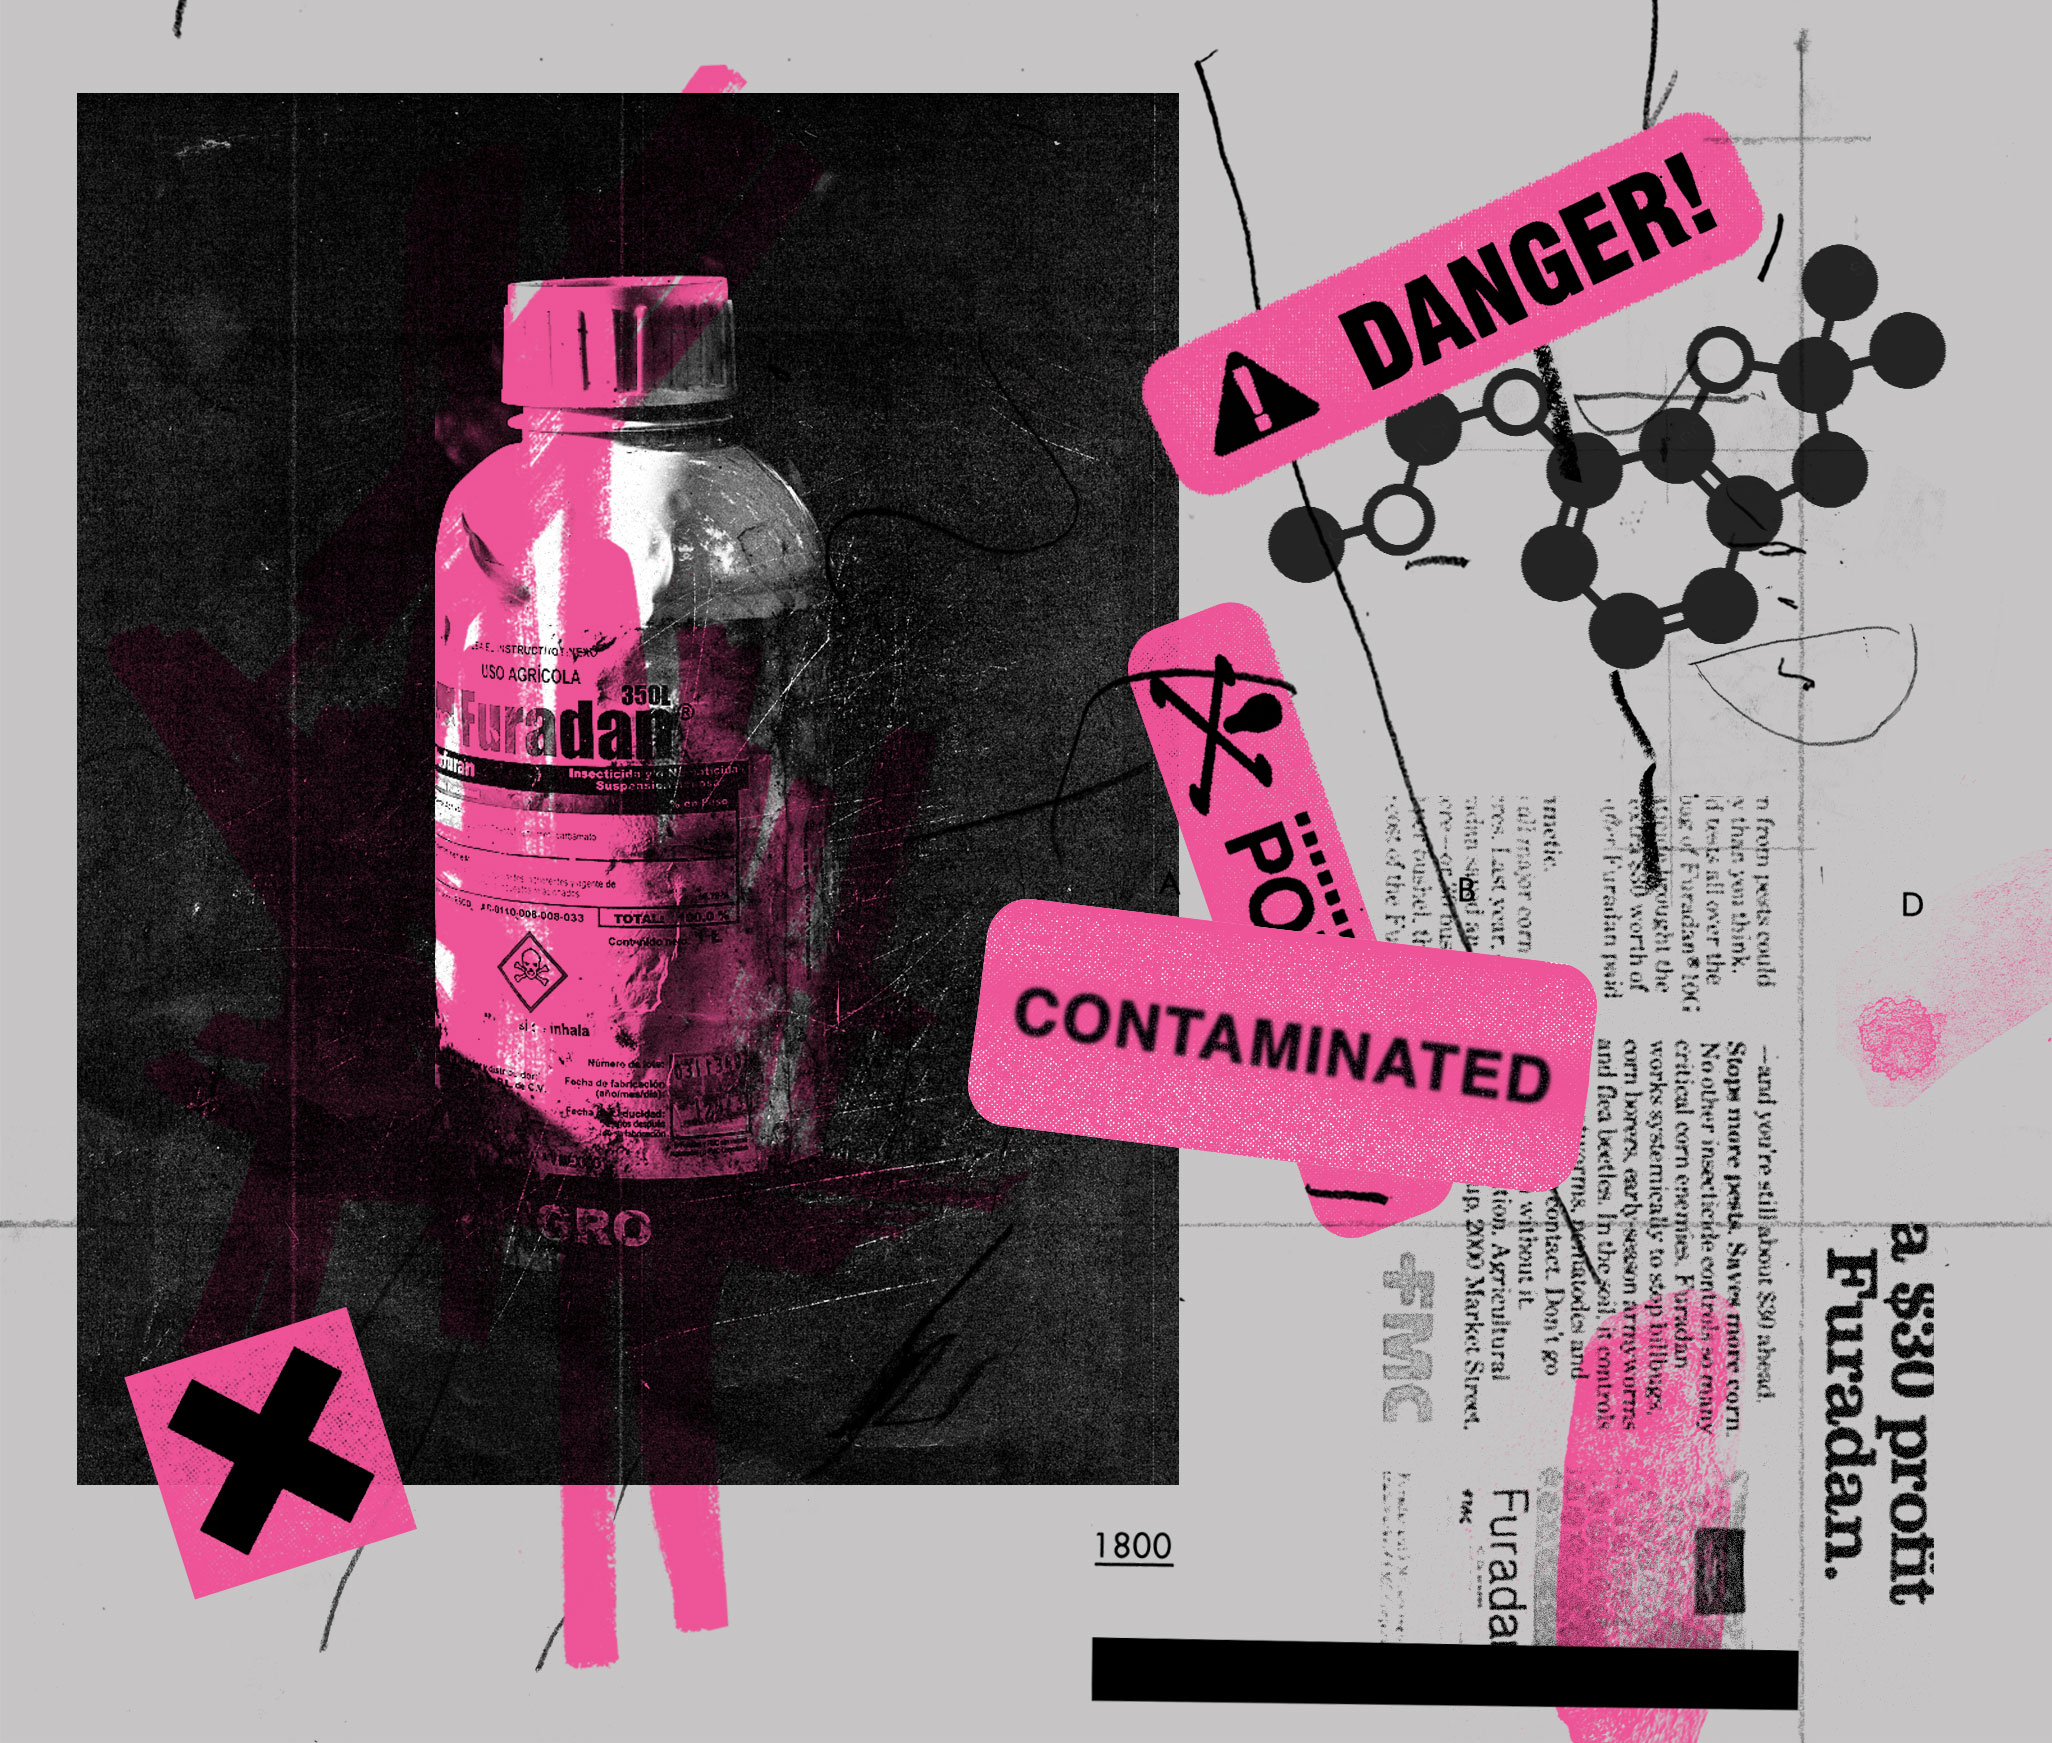 Sold in the United States under the trade name Furadan, the chemical pesticide carbofuran became an instant success for its inventor, agricultural company FMC. Illustration: Mike McQuade; Photos: Furadan Bottle, Morgan Heim; Carbofuran molecule: Molekuul/Science Source.